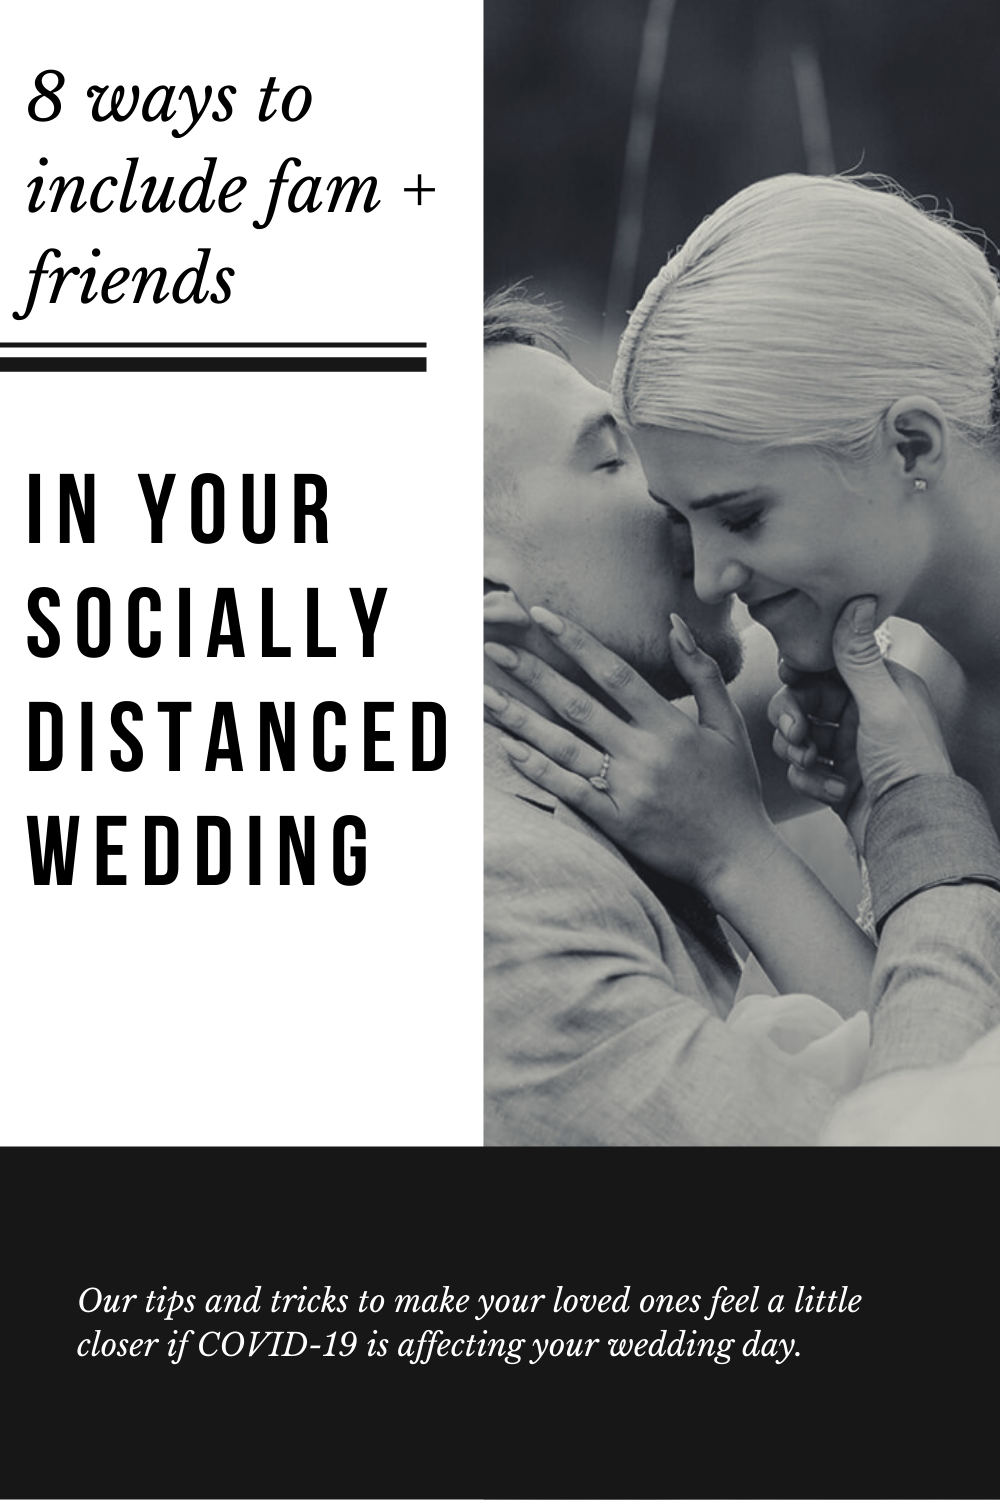 8 ways to Include Loved Ones in your Socially Distanced